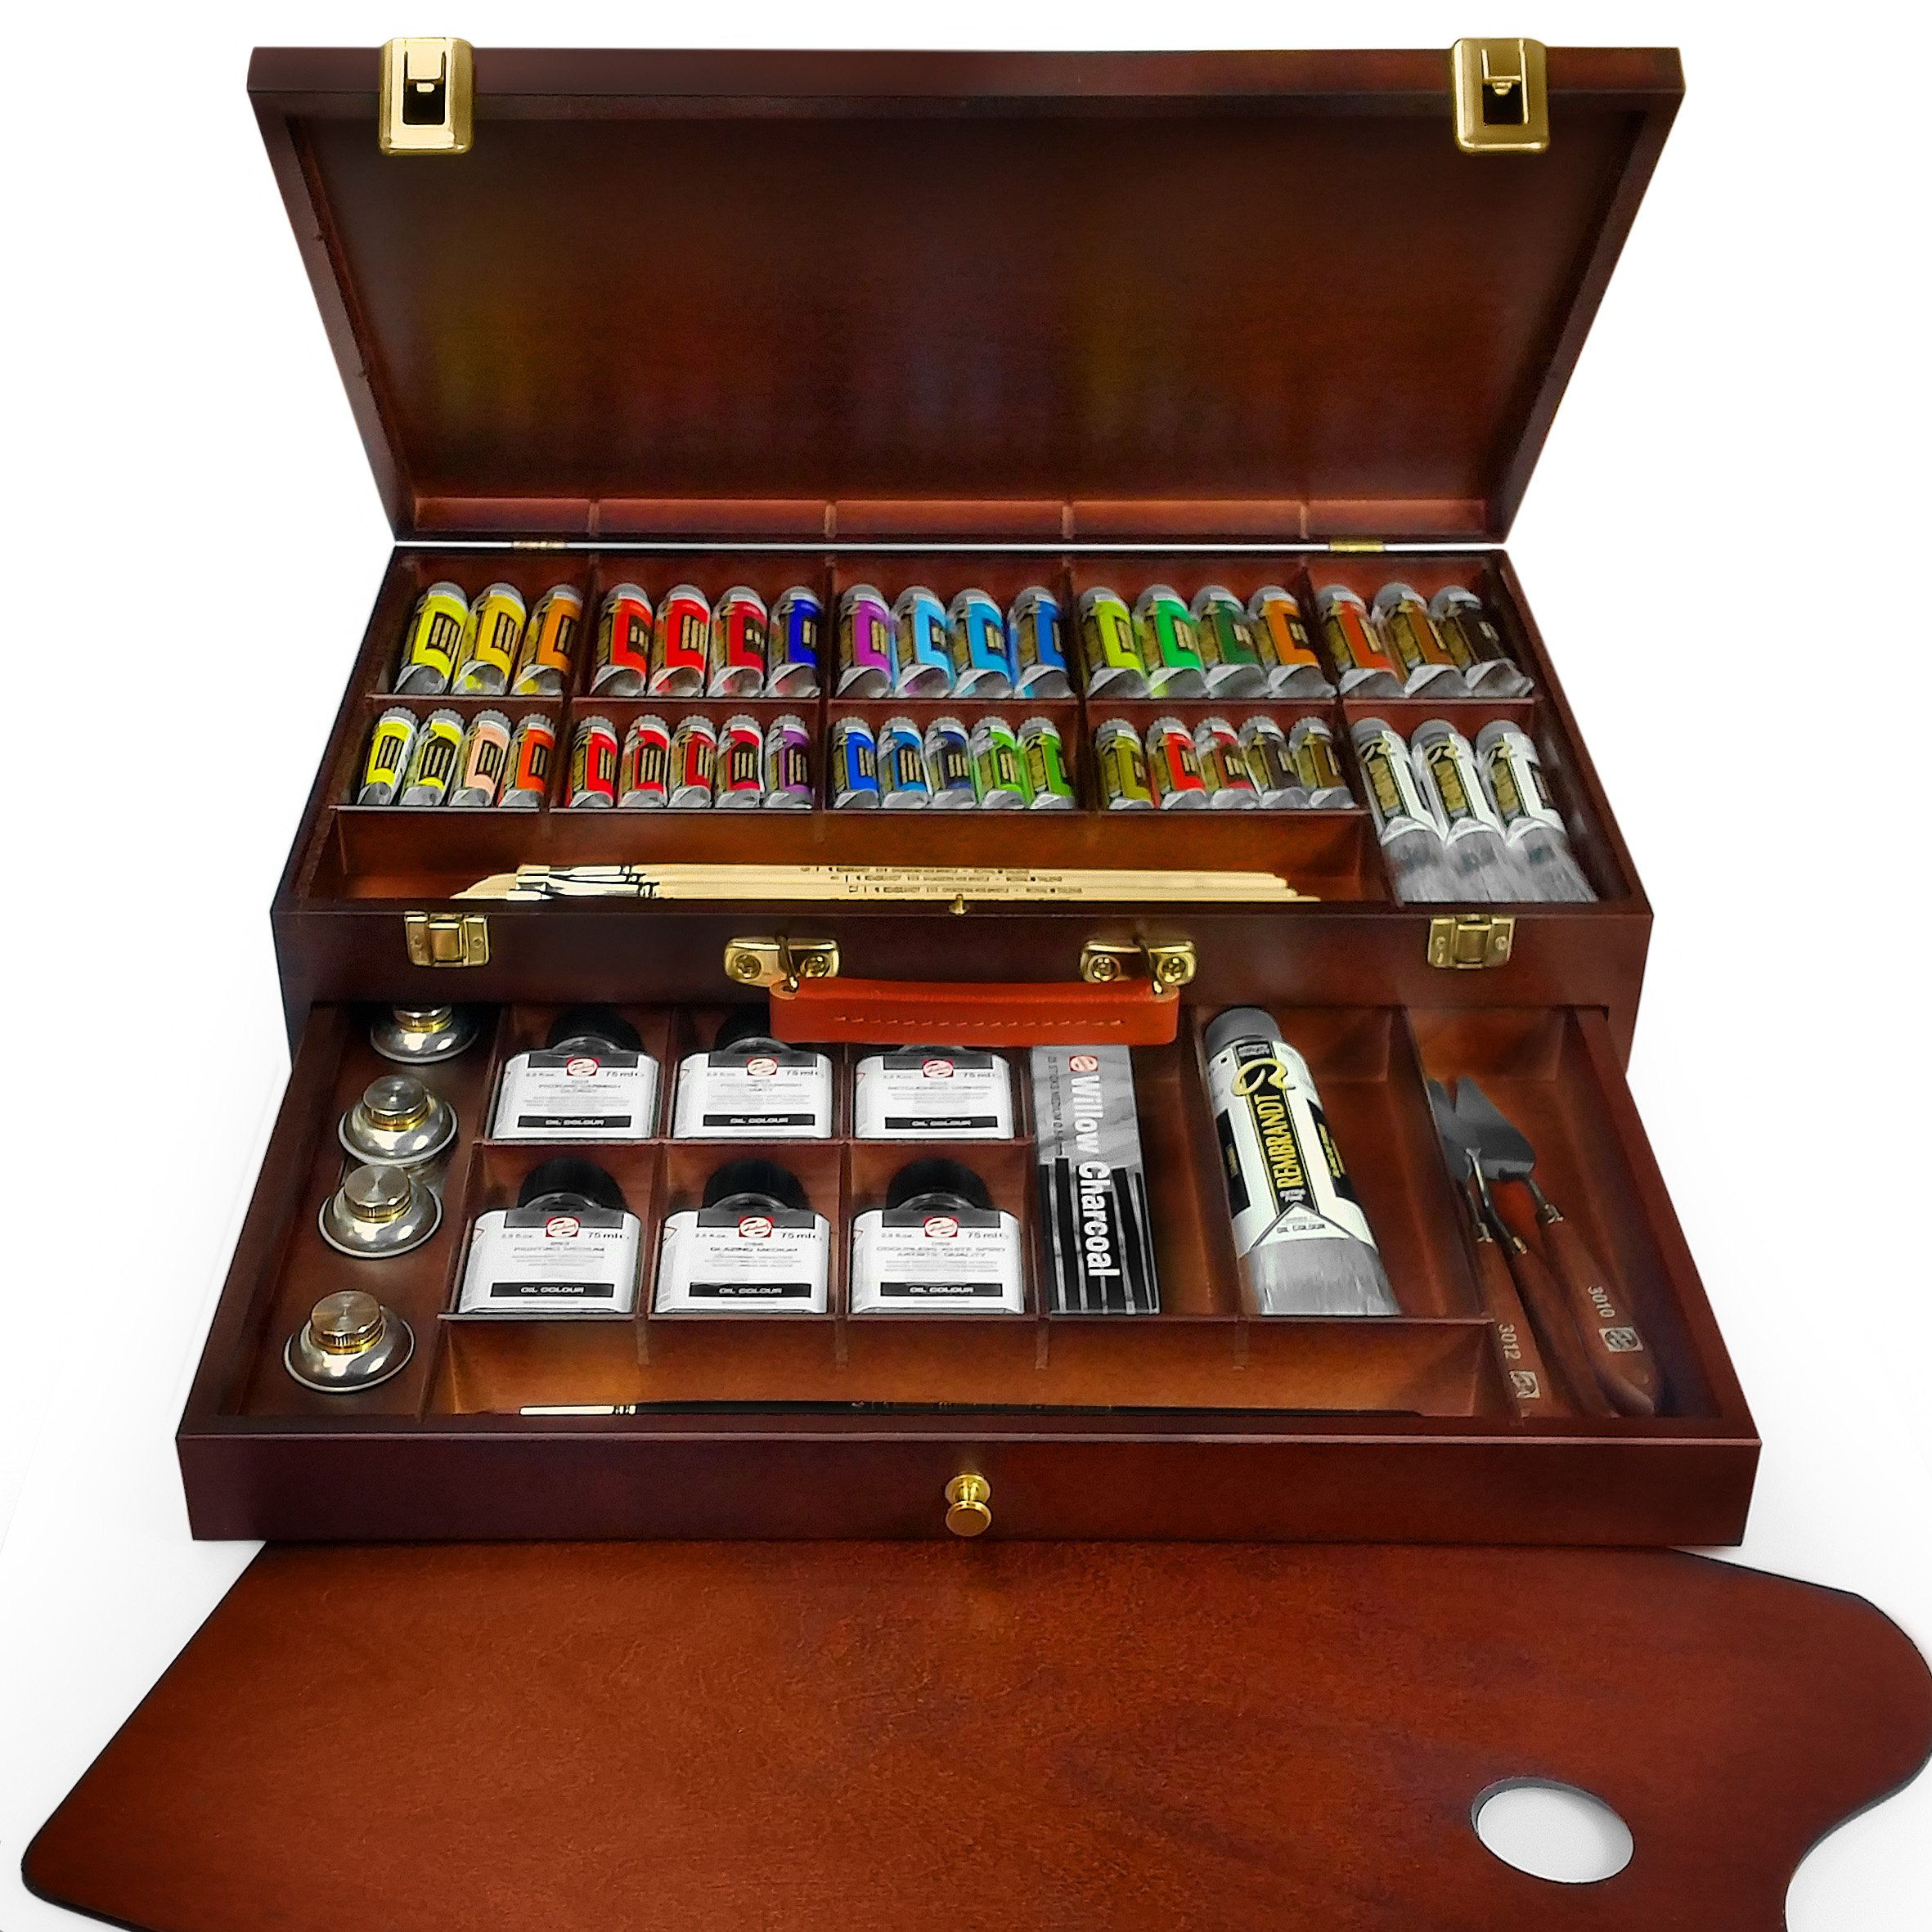 Royal Talens - Rembrandt Oil Colour Box - 'Excellent' Edition in Wooden Chest - With Paints, Palette, and Brushes